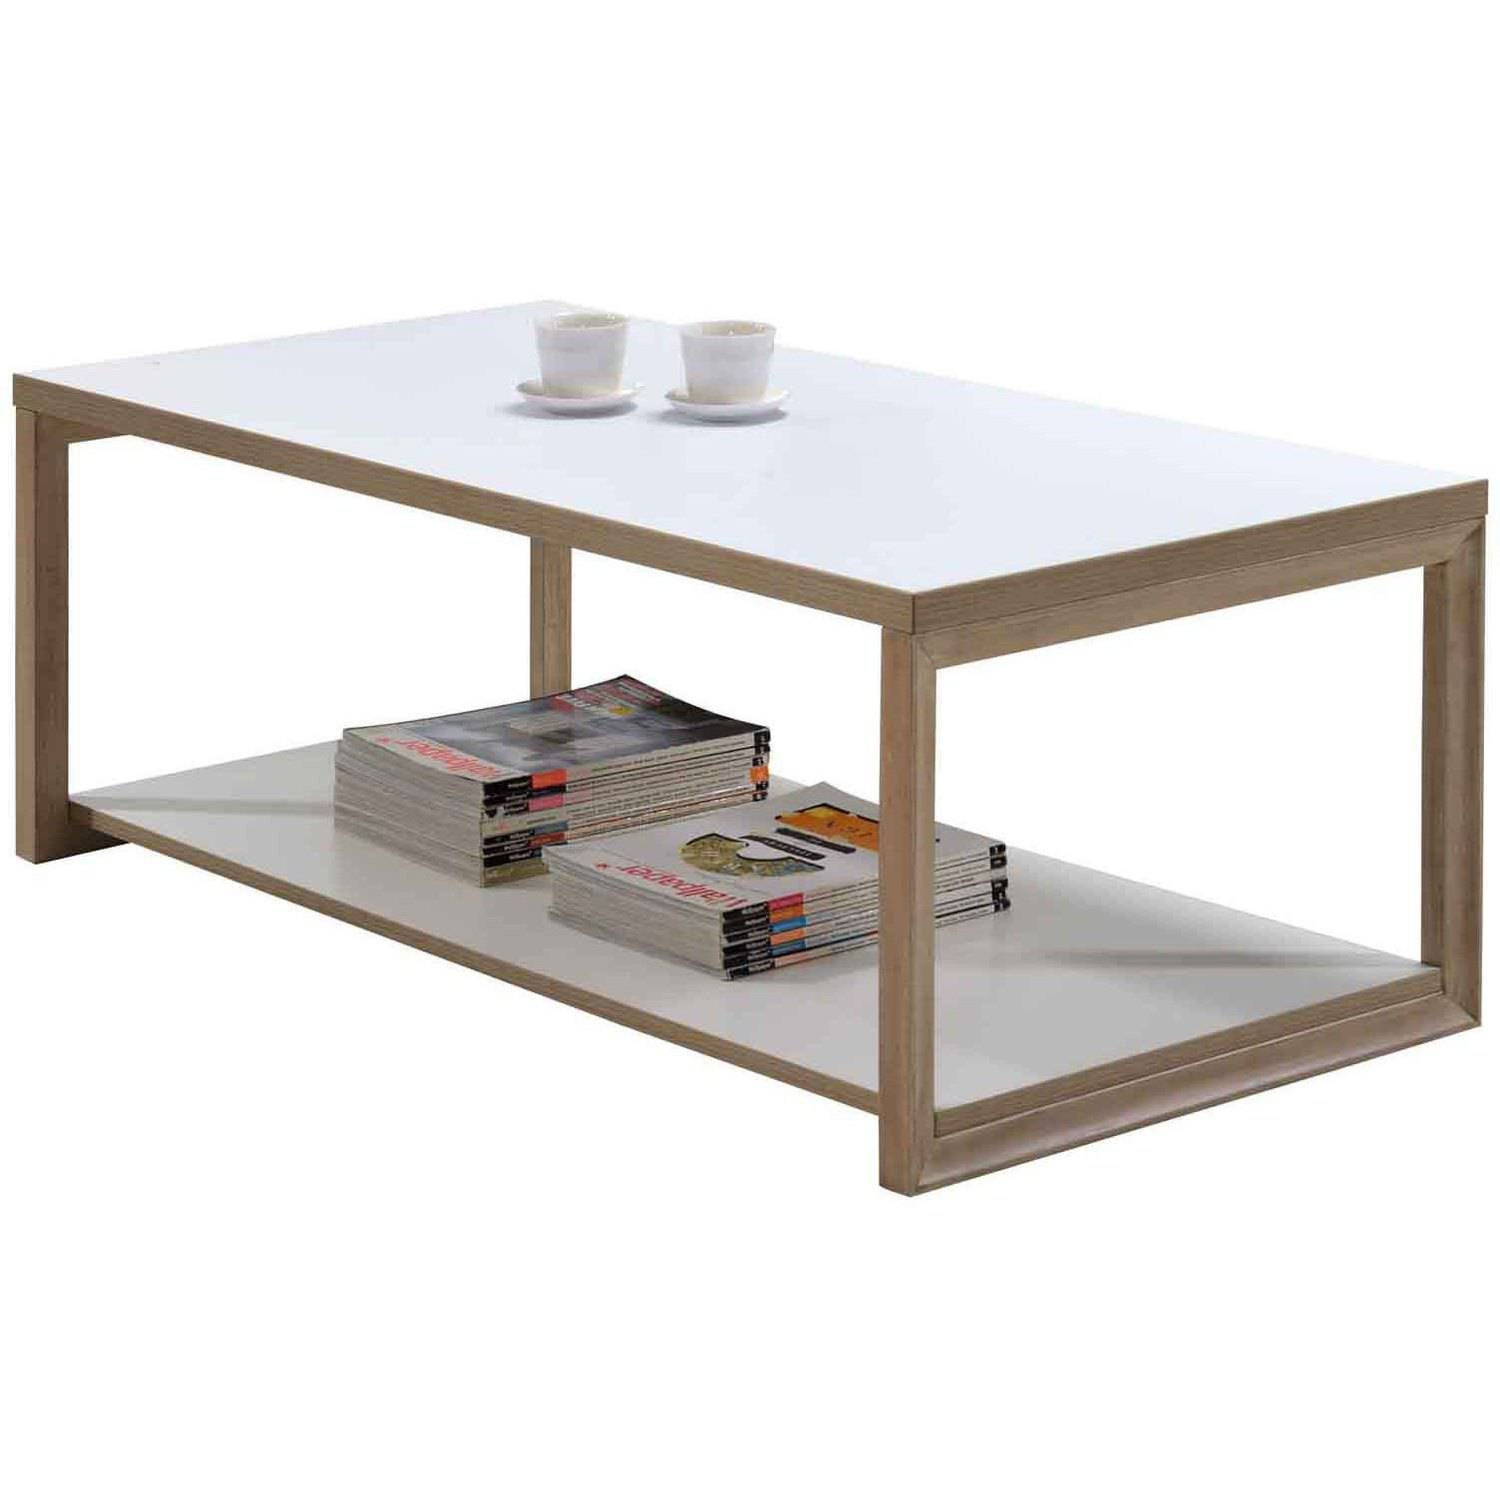 IMagio Home's Lifestyles Studio Living Collection Wood Cocktail Table, White by Overstock